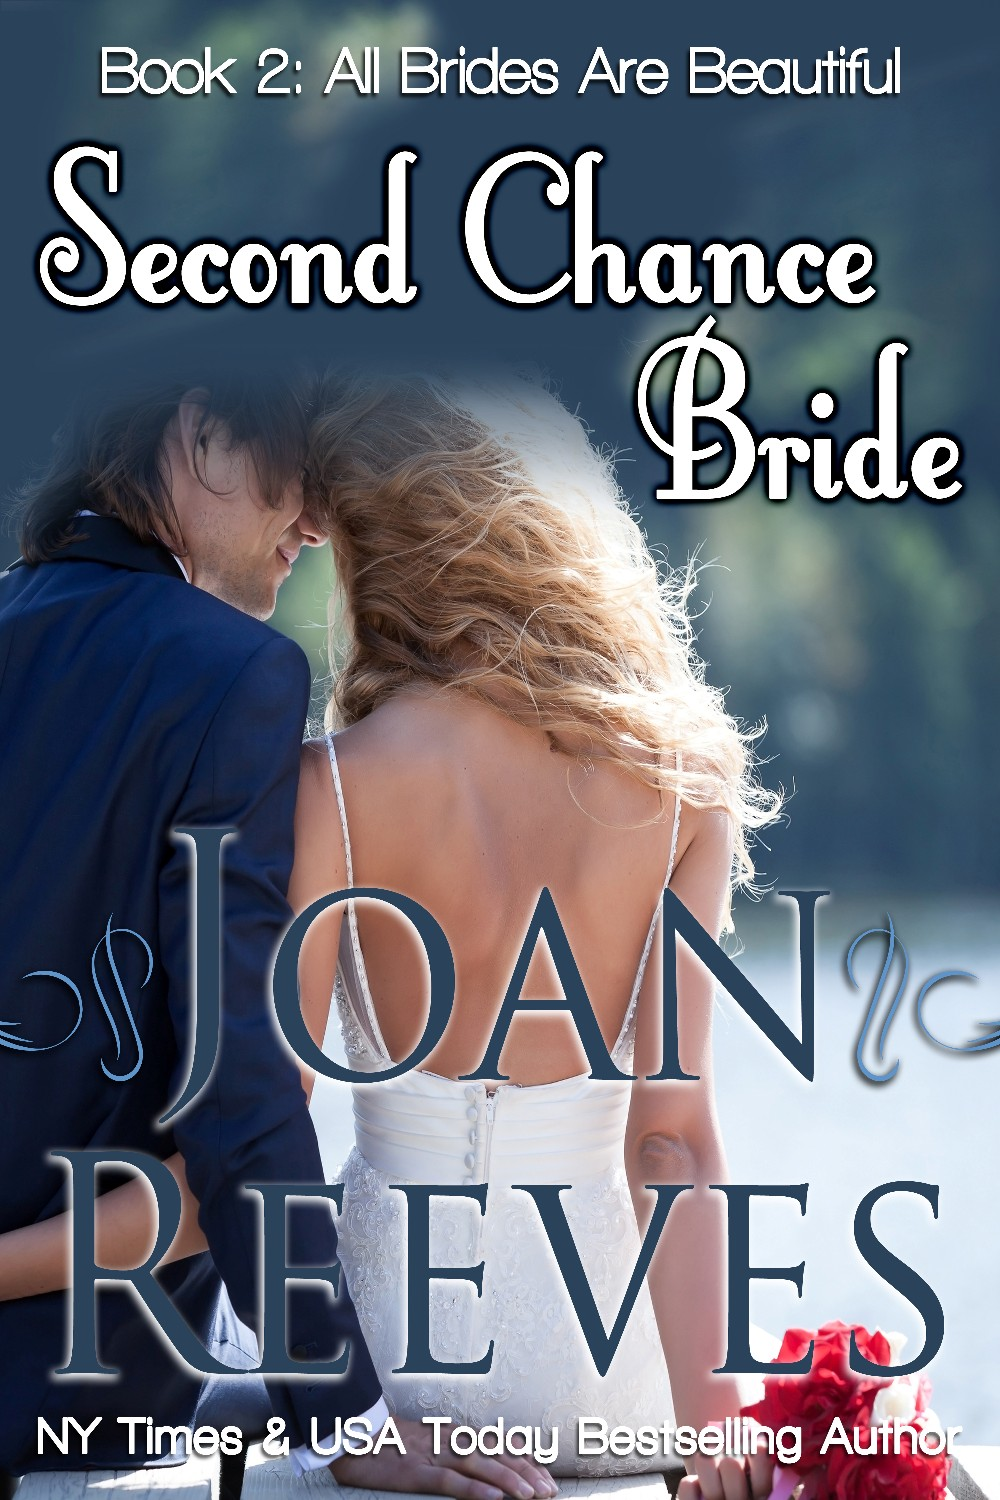 <b>Book 2, All Brides Are Beautiful</b>